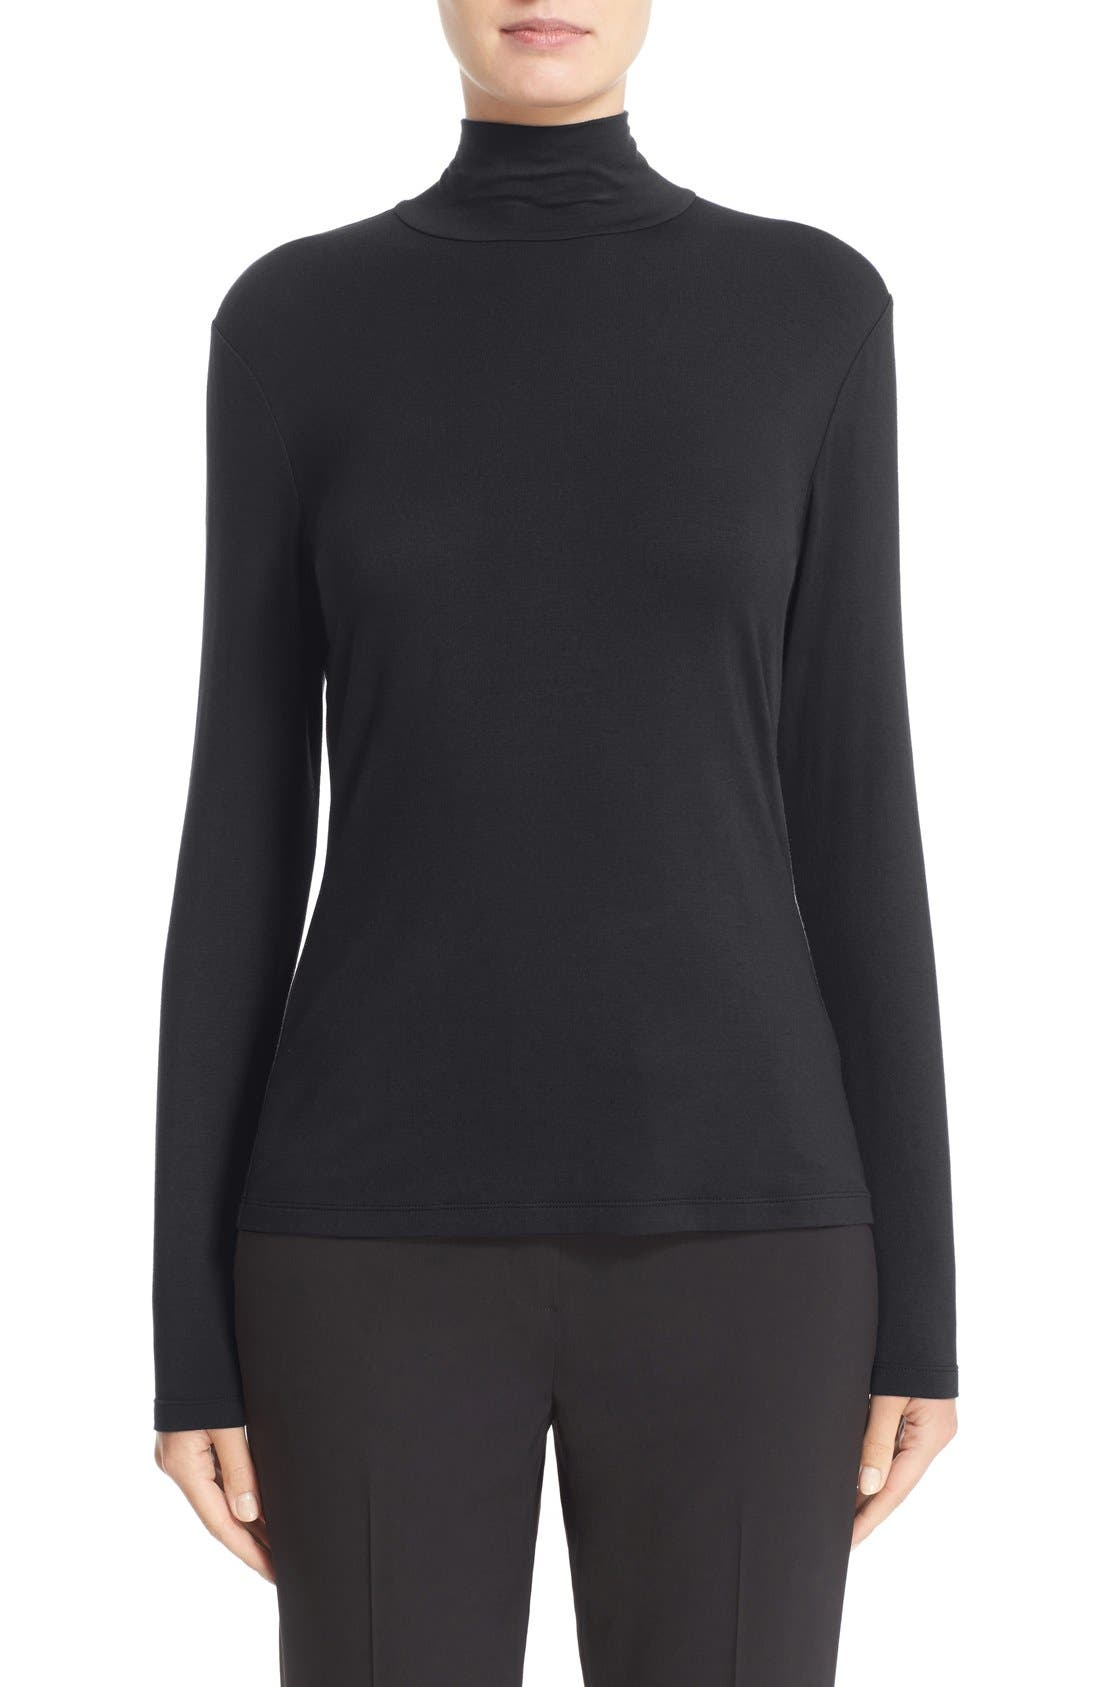 LAFAYETTE 148 NEW YORK Stretch Jersey Turtleneck